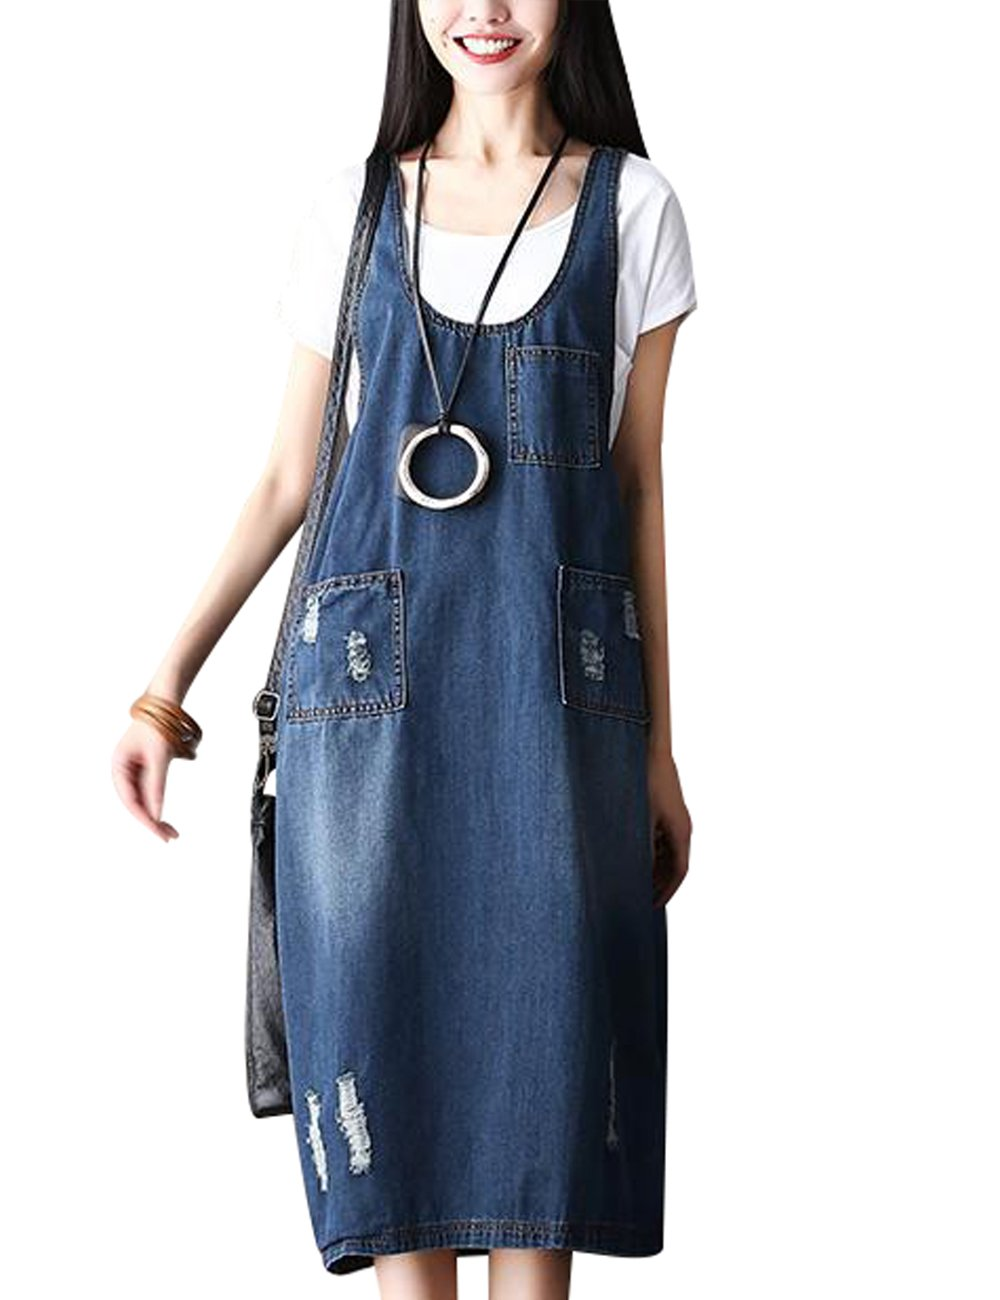 Zoulee Womens Casual Fashion Denim Jean Overall Dress with Pockets Style 2 Blue